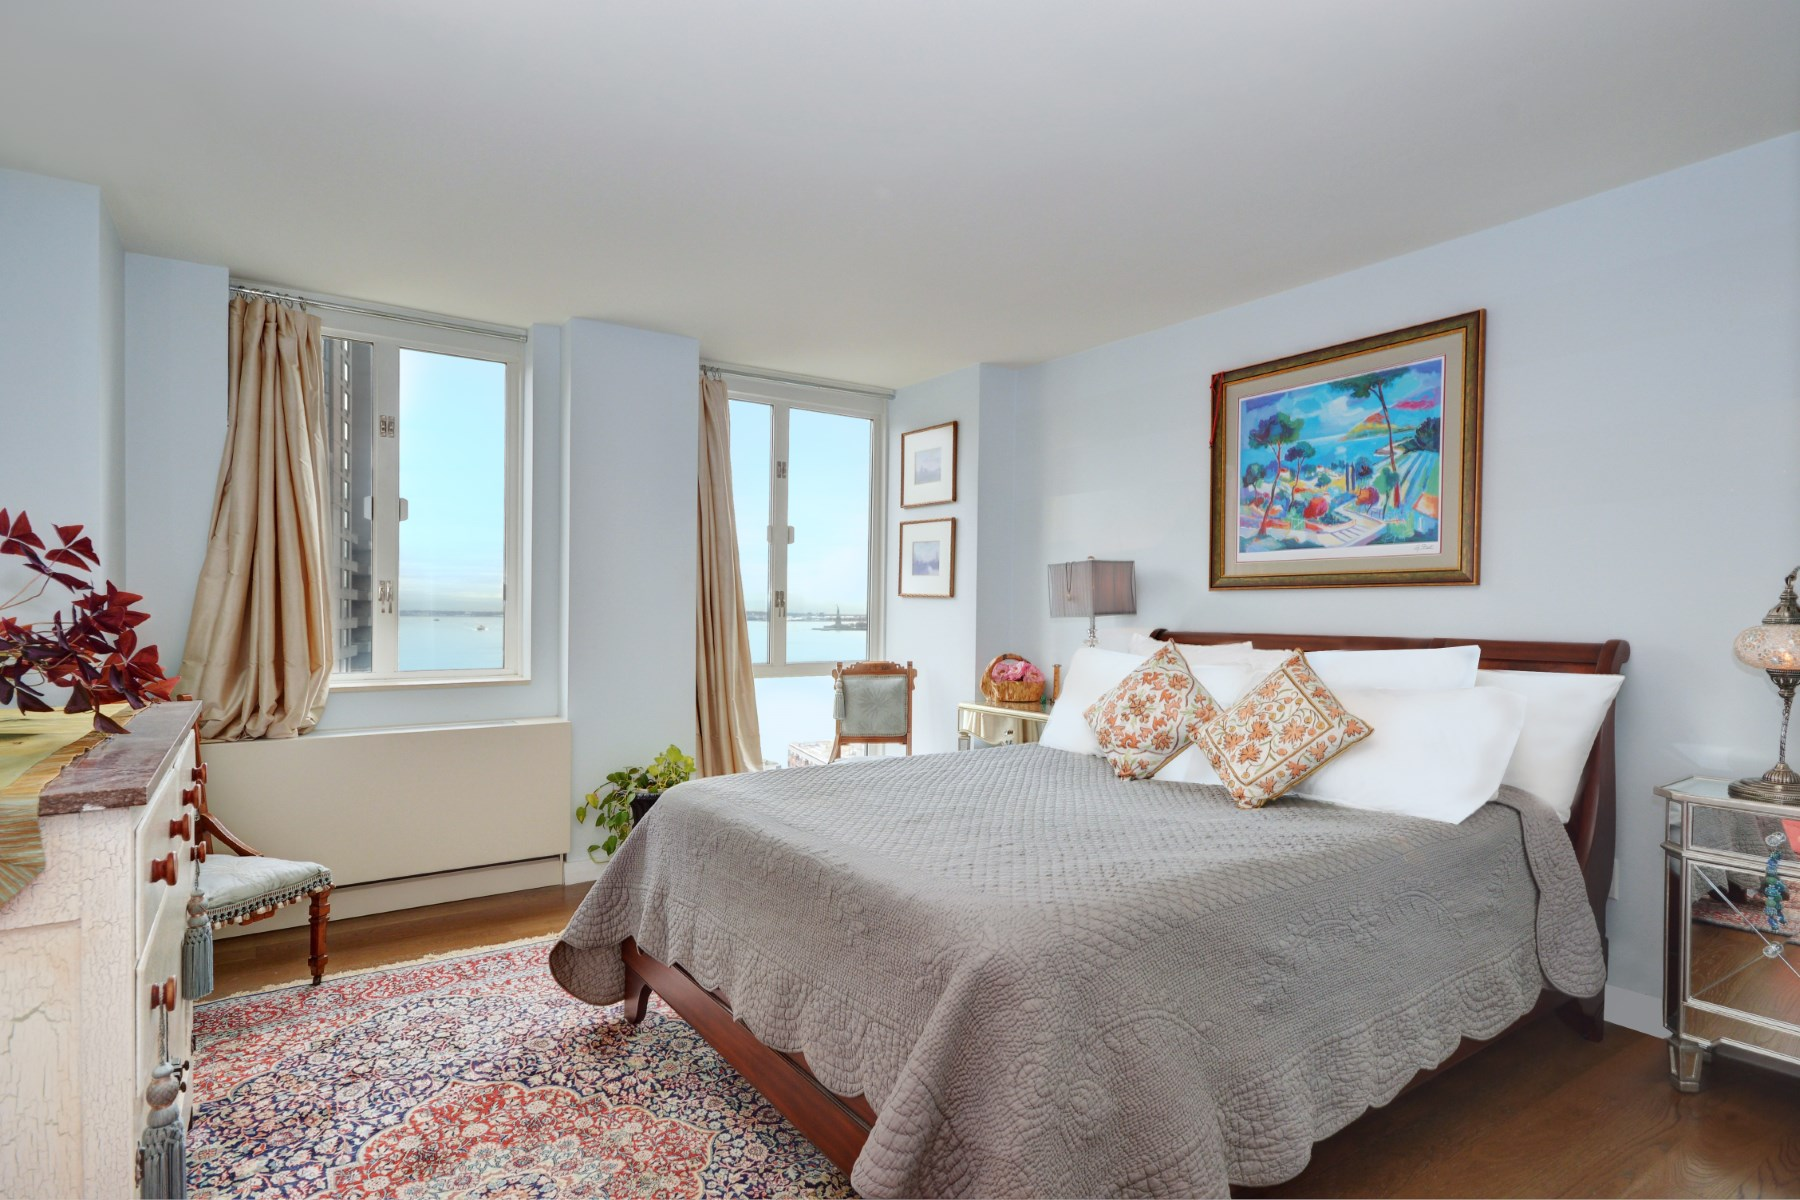 Condominium for Sale at 225 Rector Place, PH2C 225 Rector Place Apt Ph2c New York, New York 10280 United States